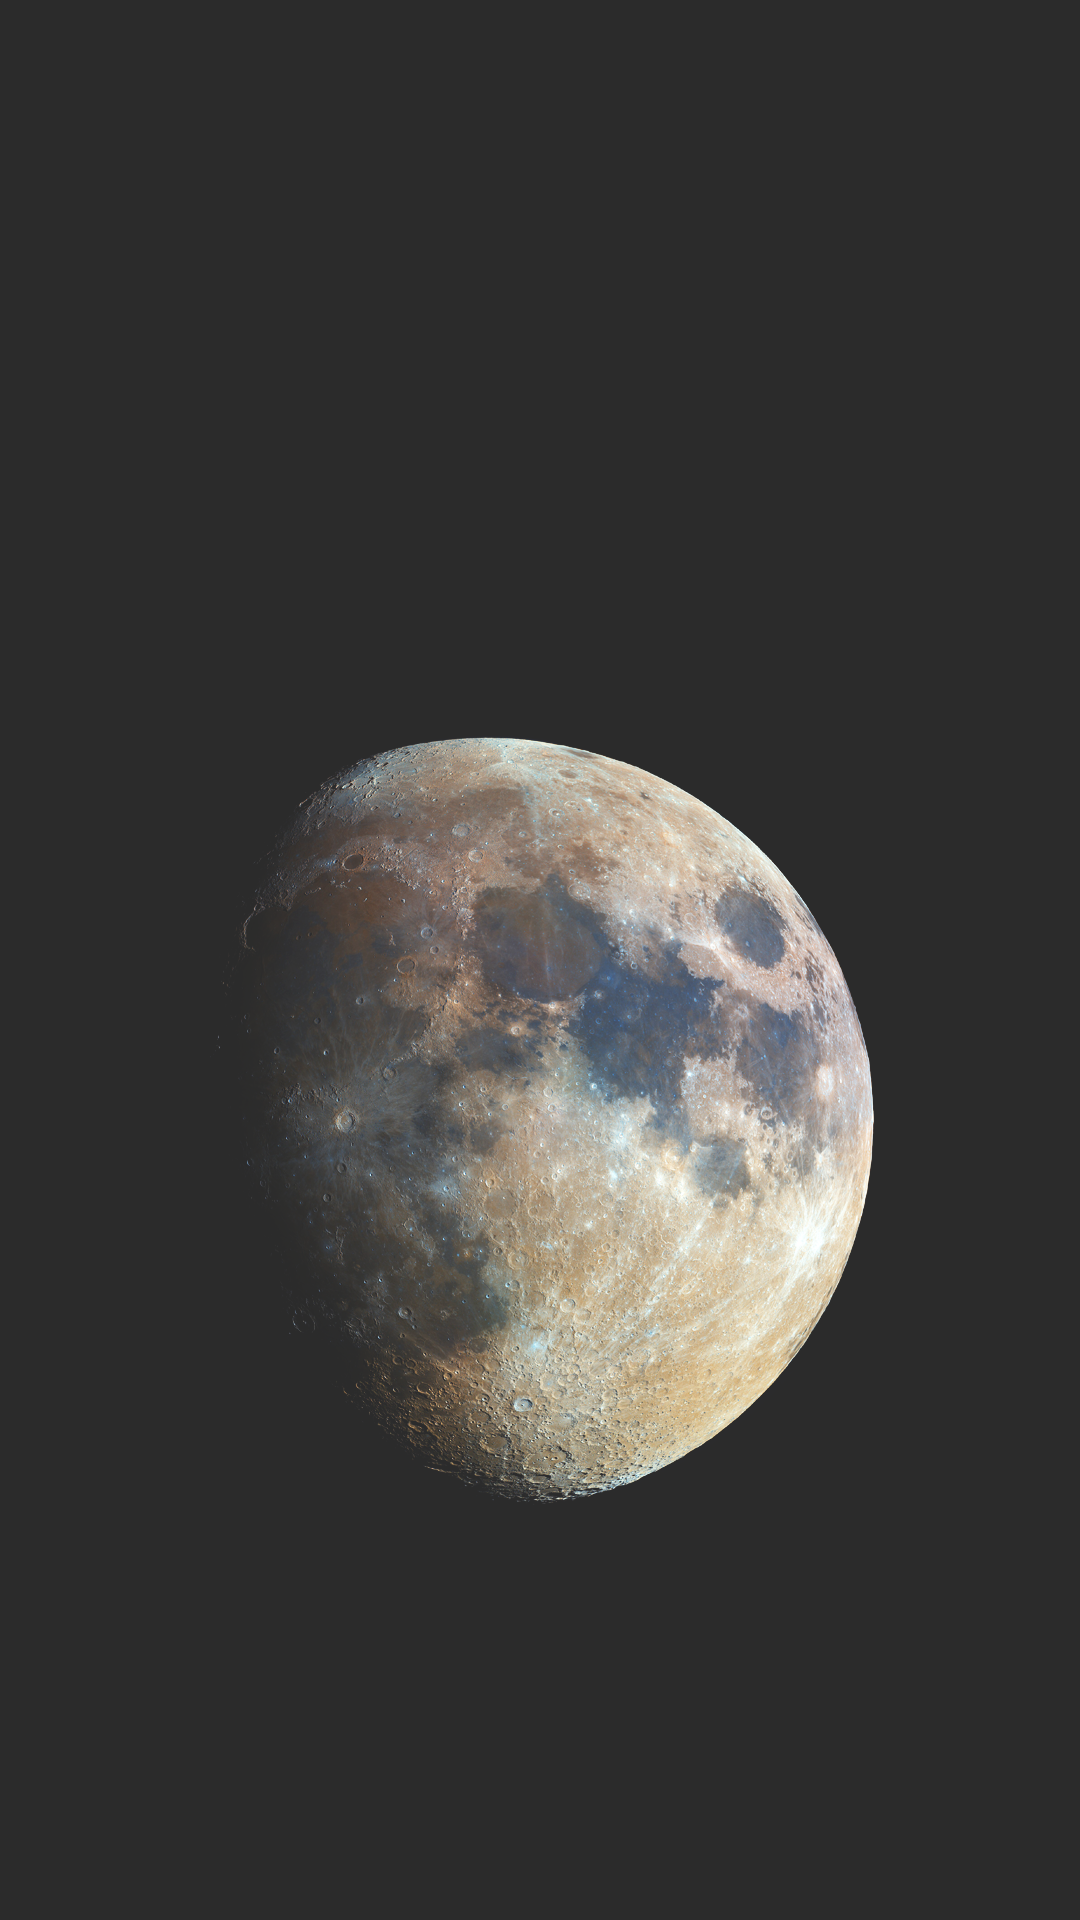 Moon Iphone Wallpapers Top Free Moon Iphone Backgrounds